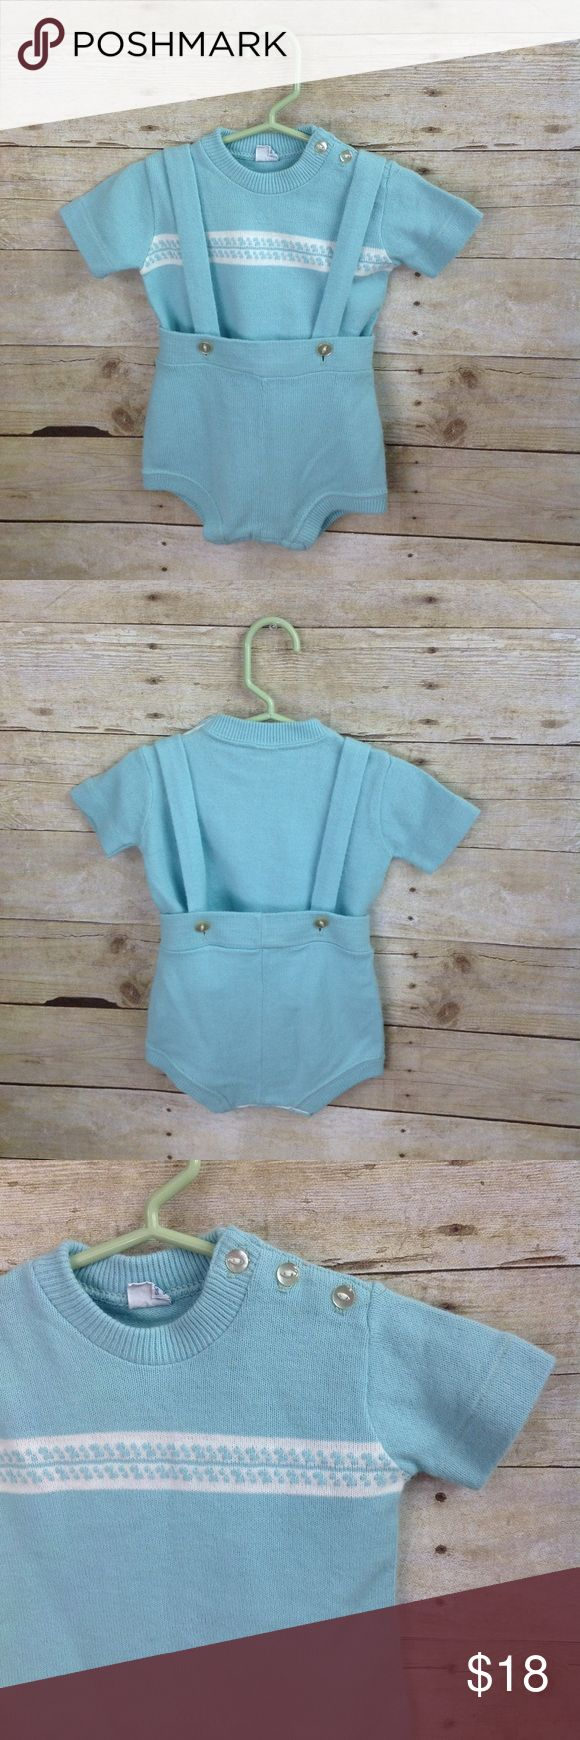 """Vintage Two Piece Turquoise Blue Jumper Boy Unisex Two piece vintage jumper by Creative Knits for Sternberg  Gorgeous turquoise blue top with white accents features a row of buttons across shoulder for easy on /off  Jumper bottoms, also a desirable turquoise knit, feature buttons for removable straps!   Top-Pit to pit =11"""" across. Shoulder to shoulder = 9"""" across. Length =11.5""""  Jumper-Waist measures approximately 9"""" across. Hips measure approximately 11"""" across Length (from waist band to…"""